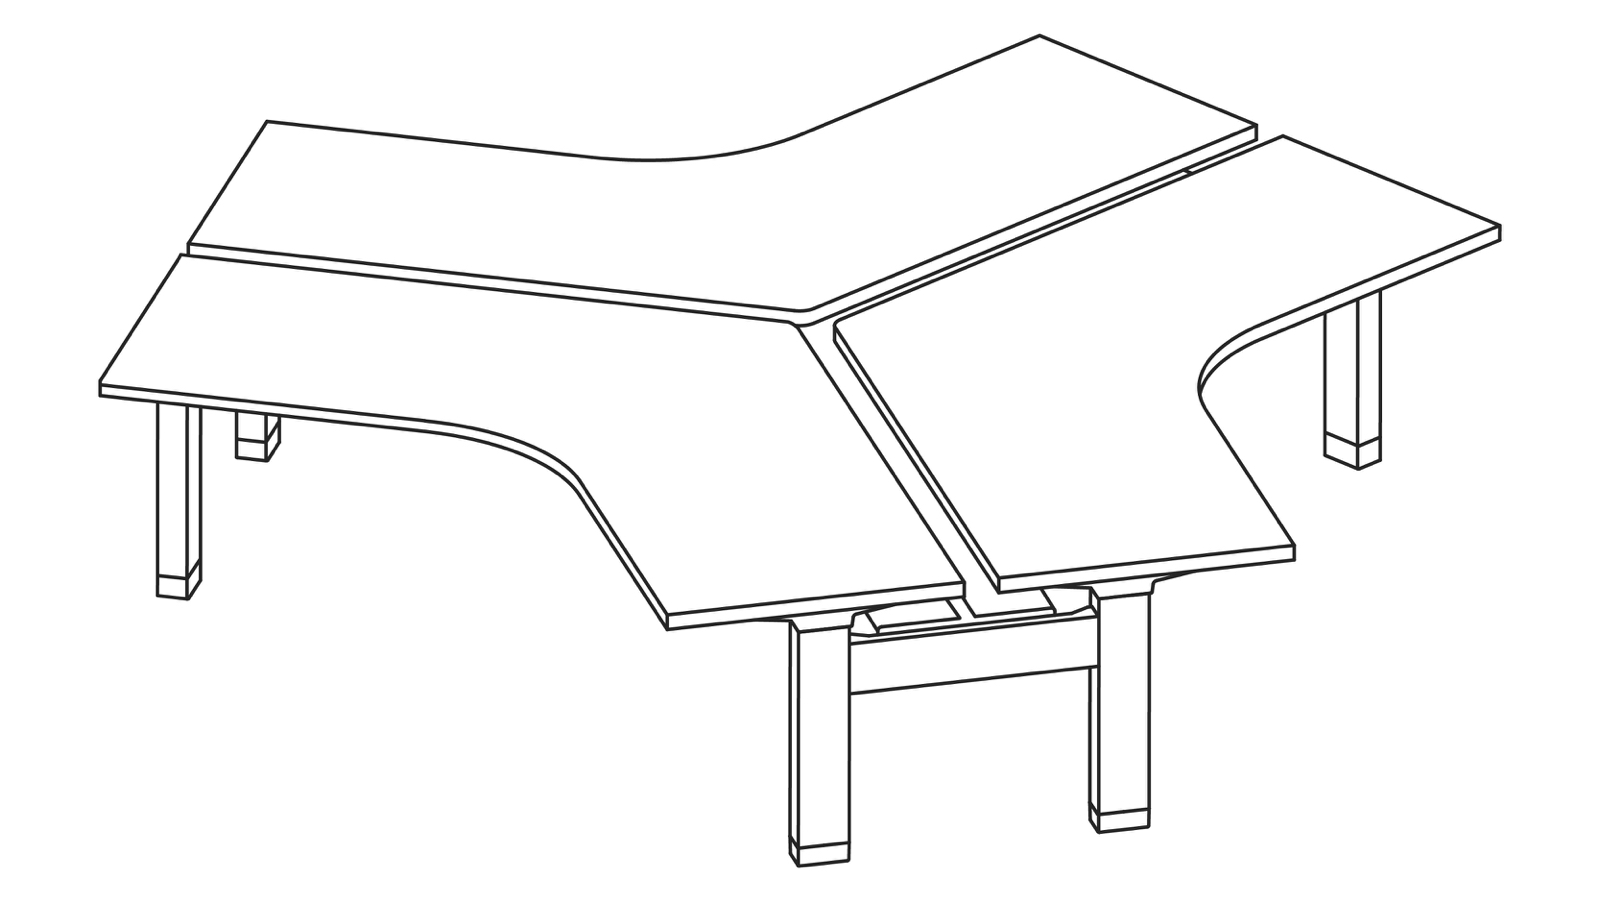 A line drawing of a Renew Link standing desk system in a 120-degree bench configuration.